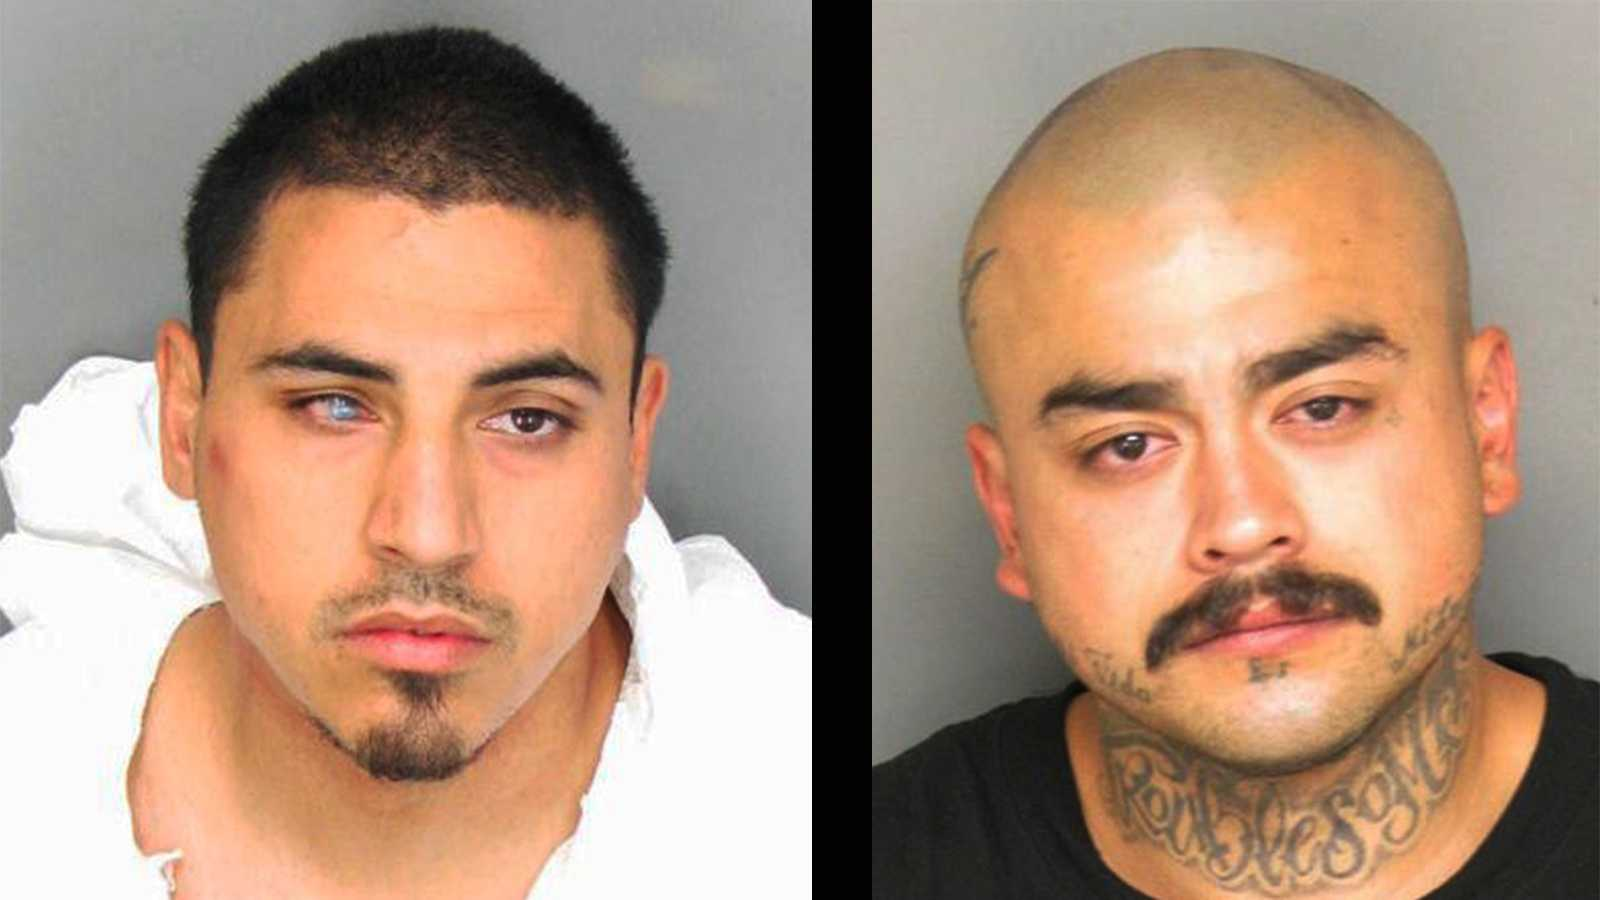 Daniel Magdalen, left, and Daniel Sanchez, right, are Salinas gang members, police said.